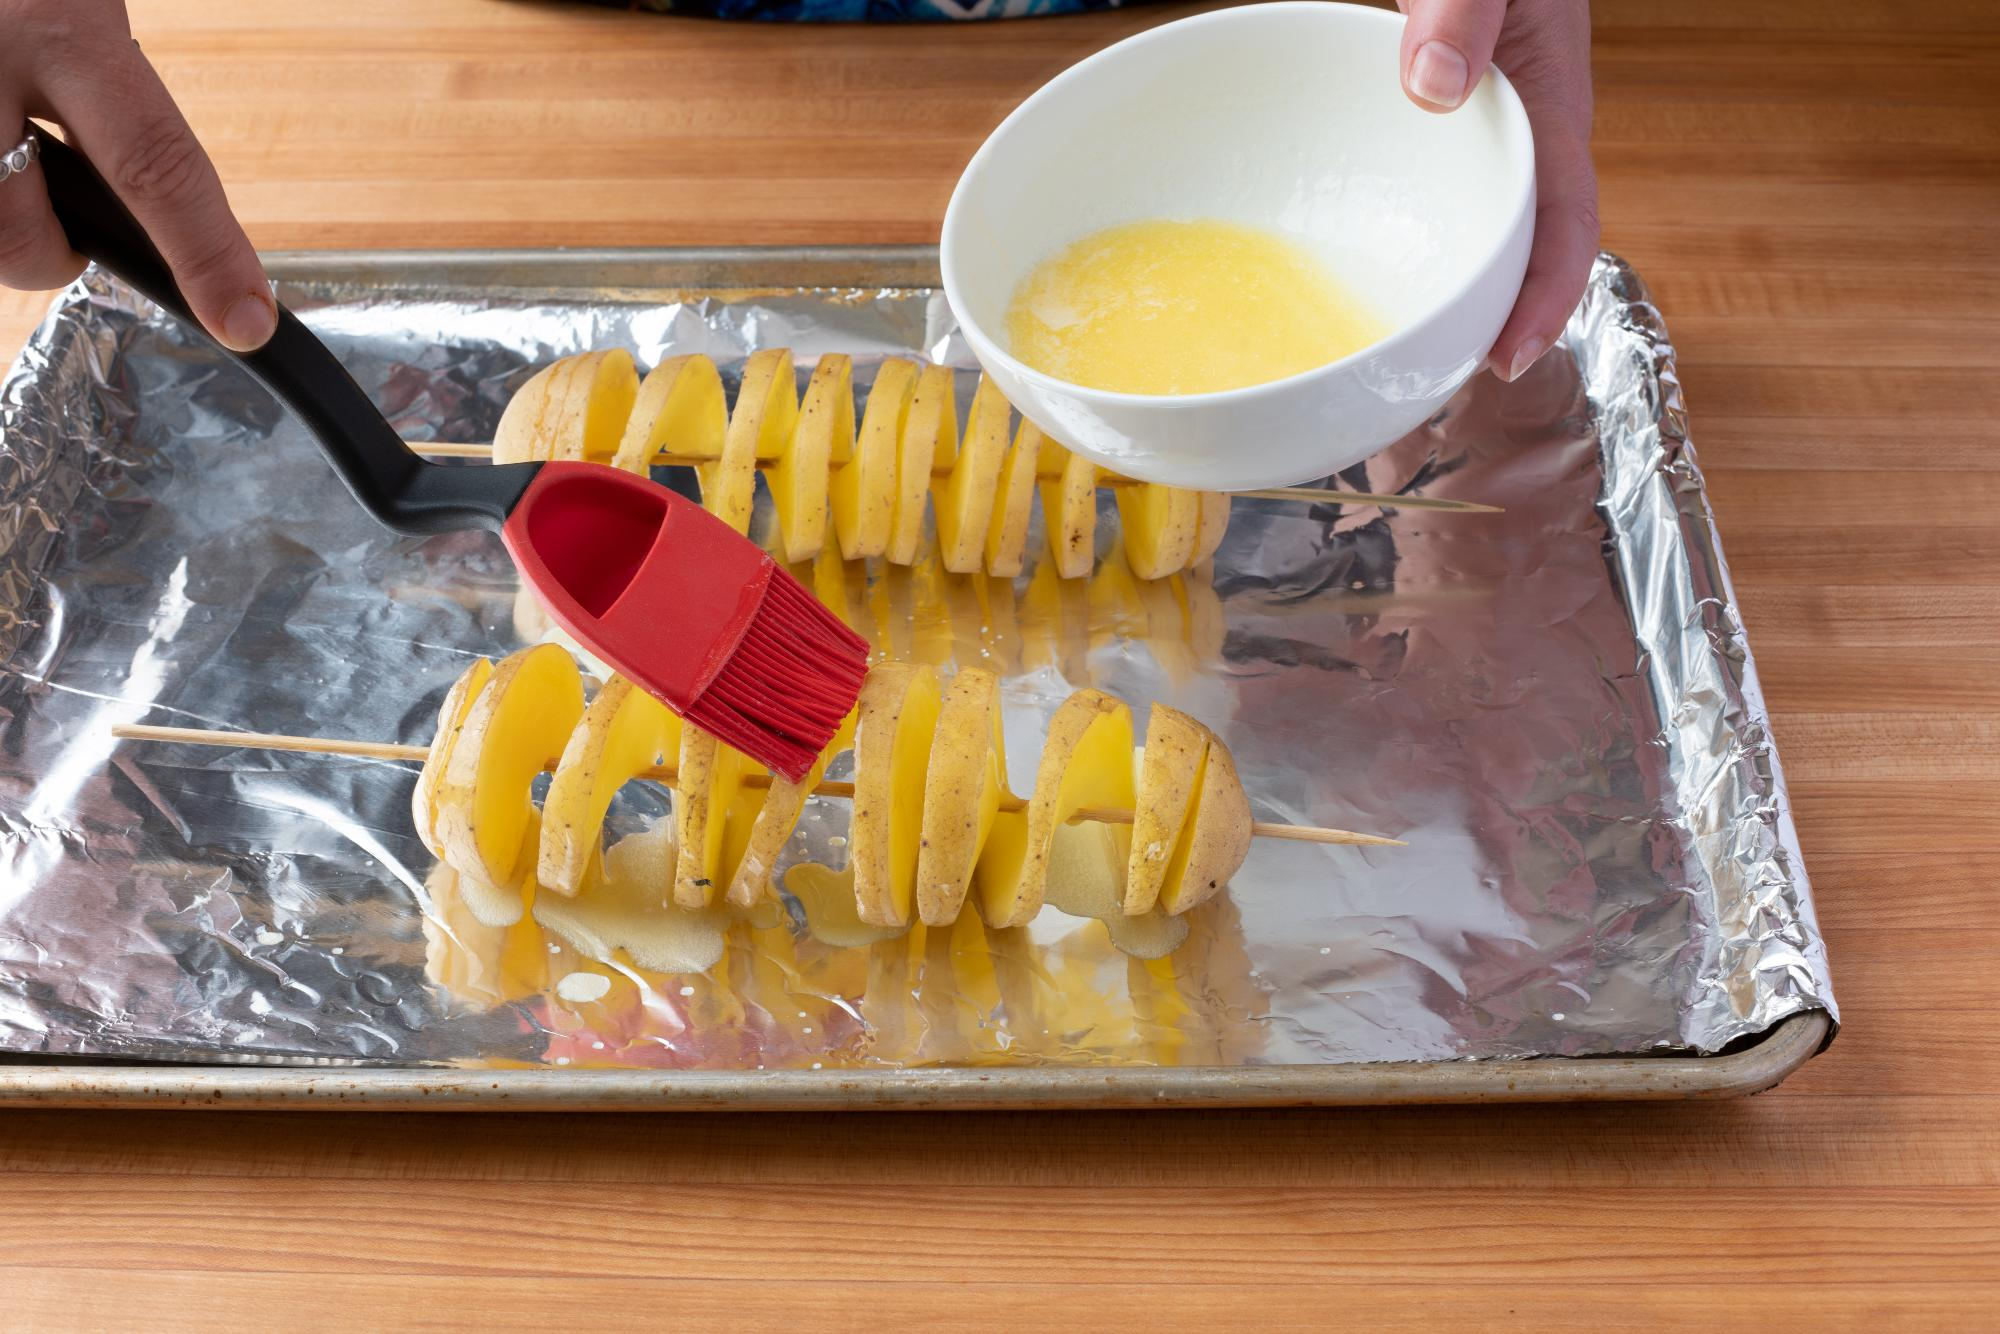 Brushing the potato with butter.